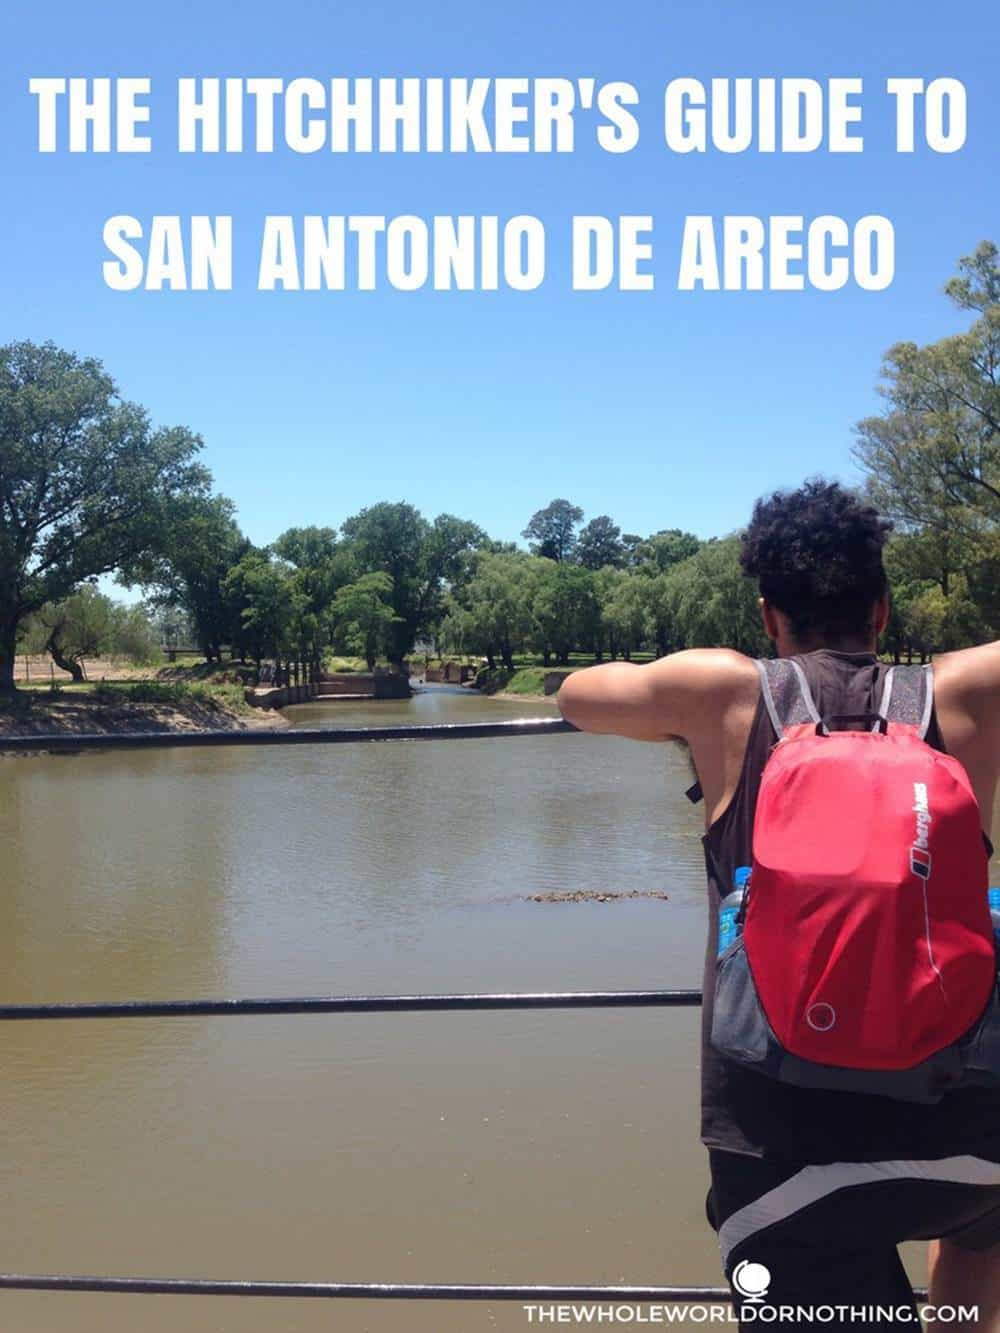 James at the lake with text overlay The Hitchhiker's guide to San Antonio de Areco